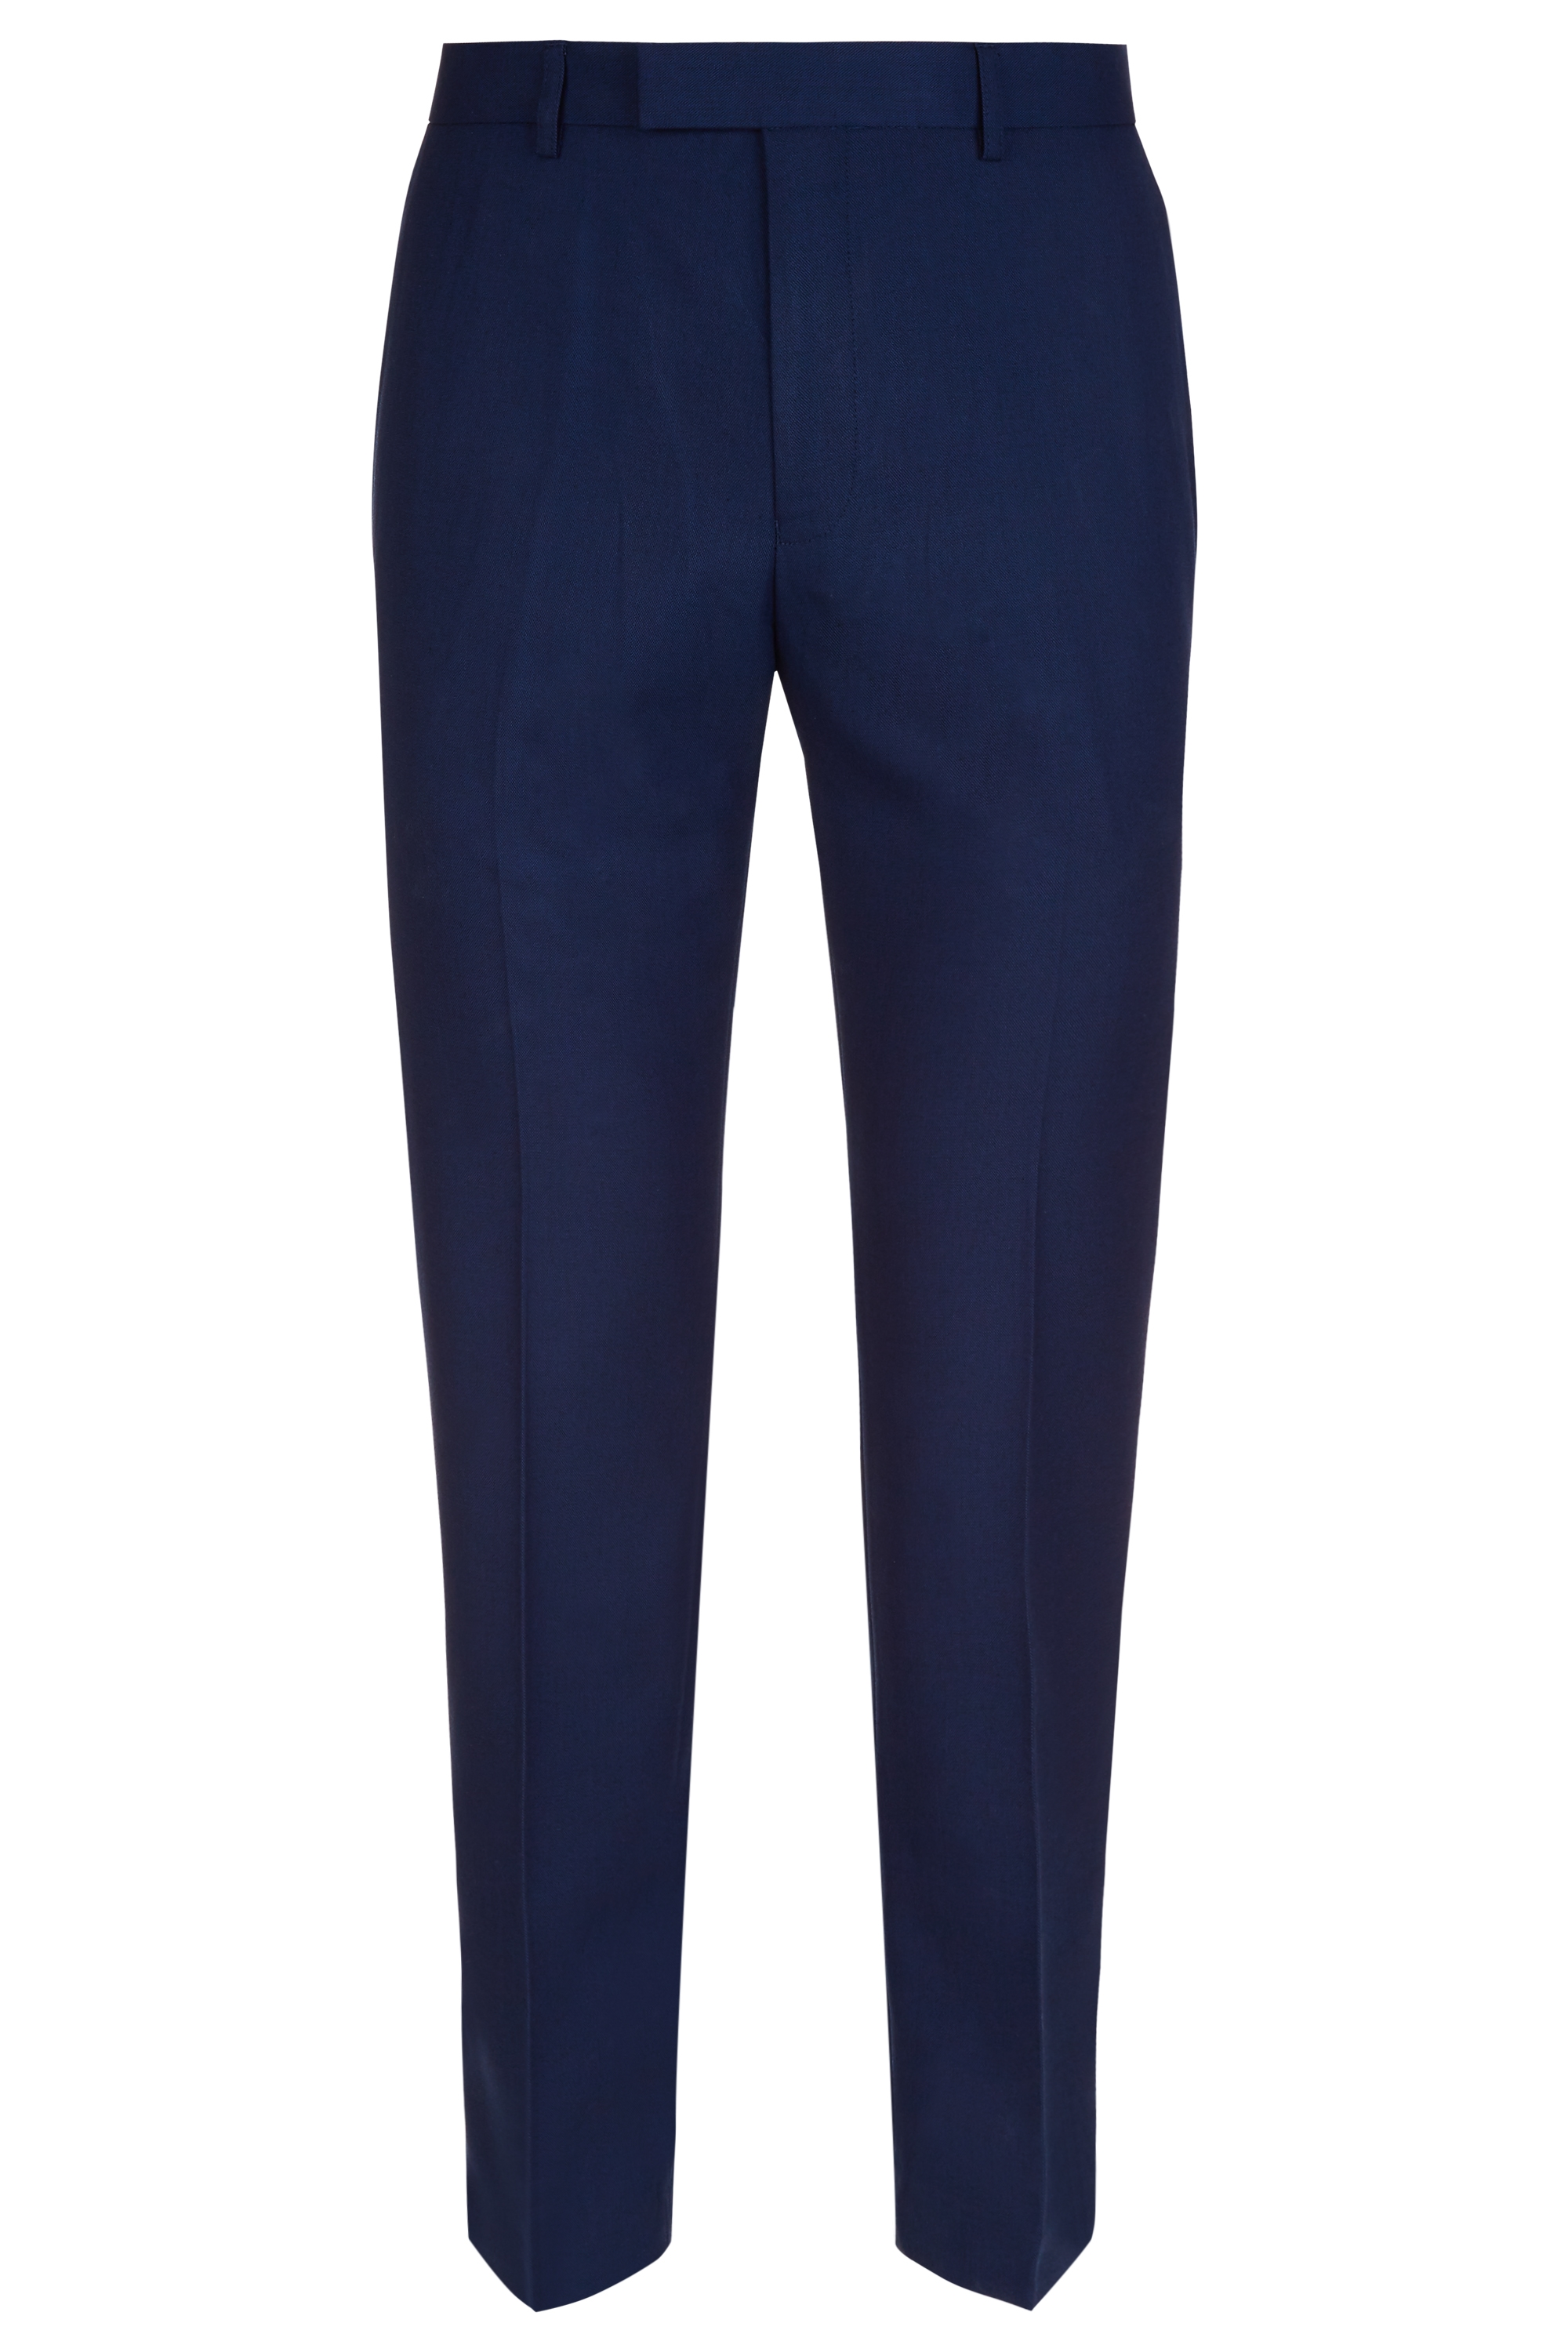 Color:navy blue Nice quality Slimfit size Size to 36,walng 35 #Pants#slacks #nicequality#navybluepants#menswesr#mensfashion #koreanfashion #korean#cod#freeshipping - Buy 🌟COD Navy blue slacks pants for men🌟.